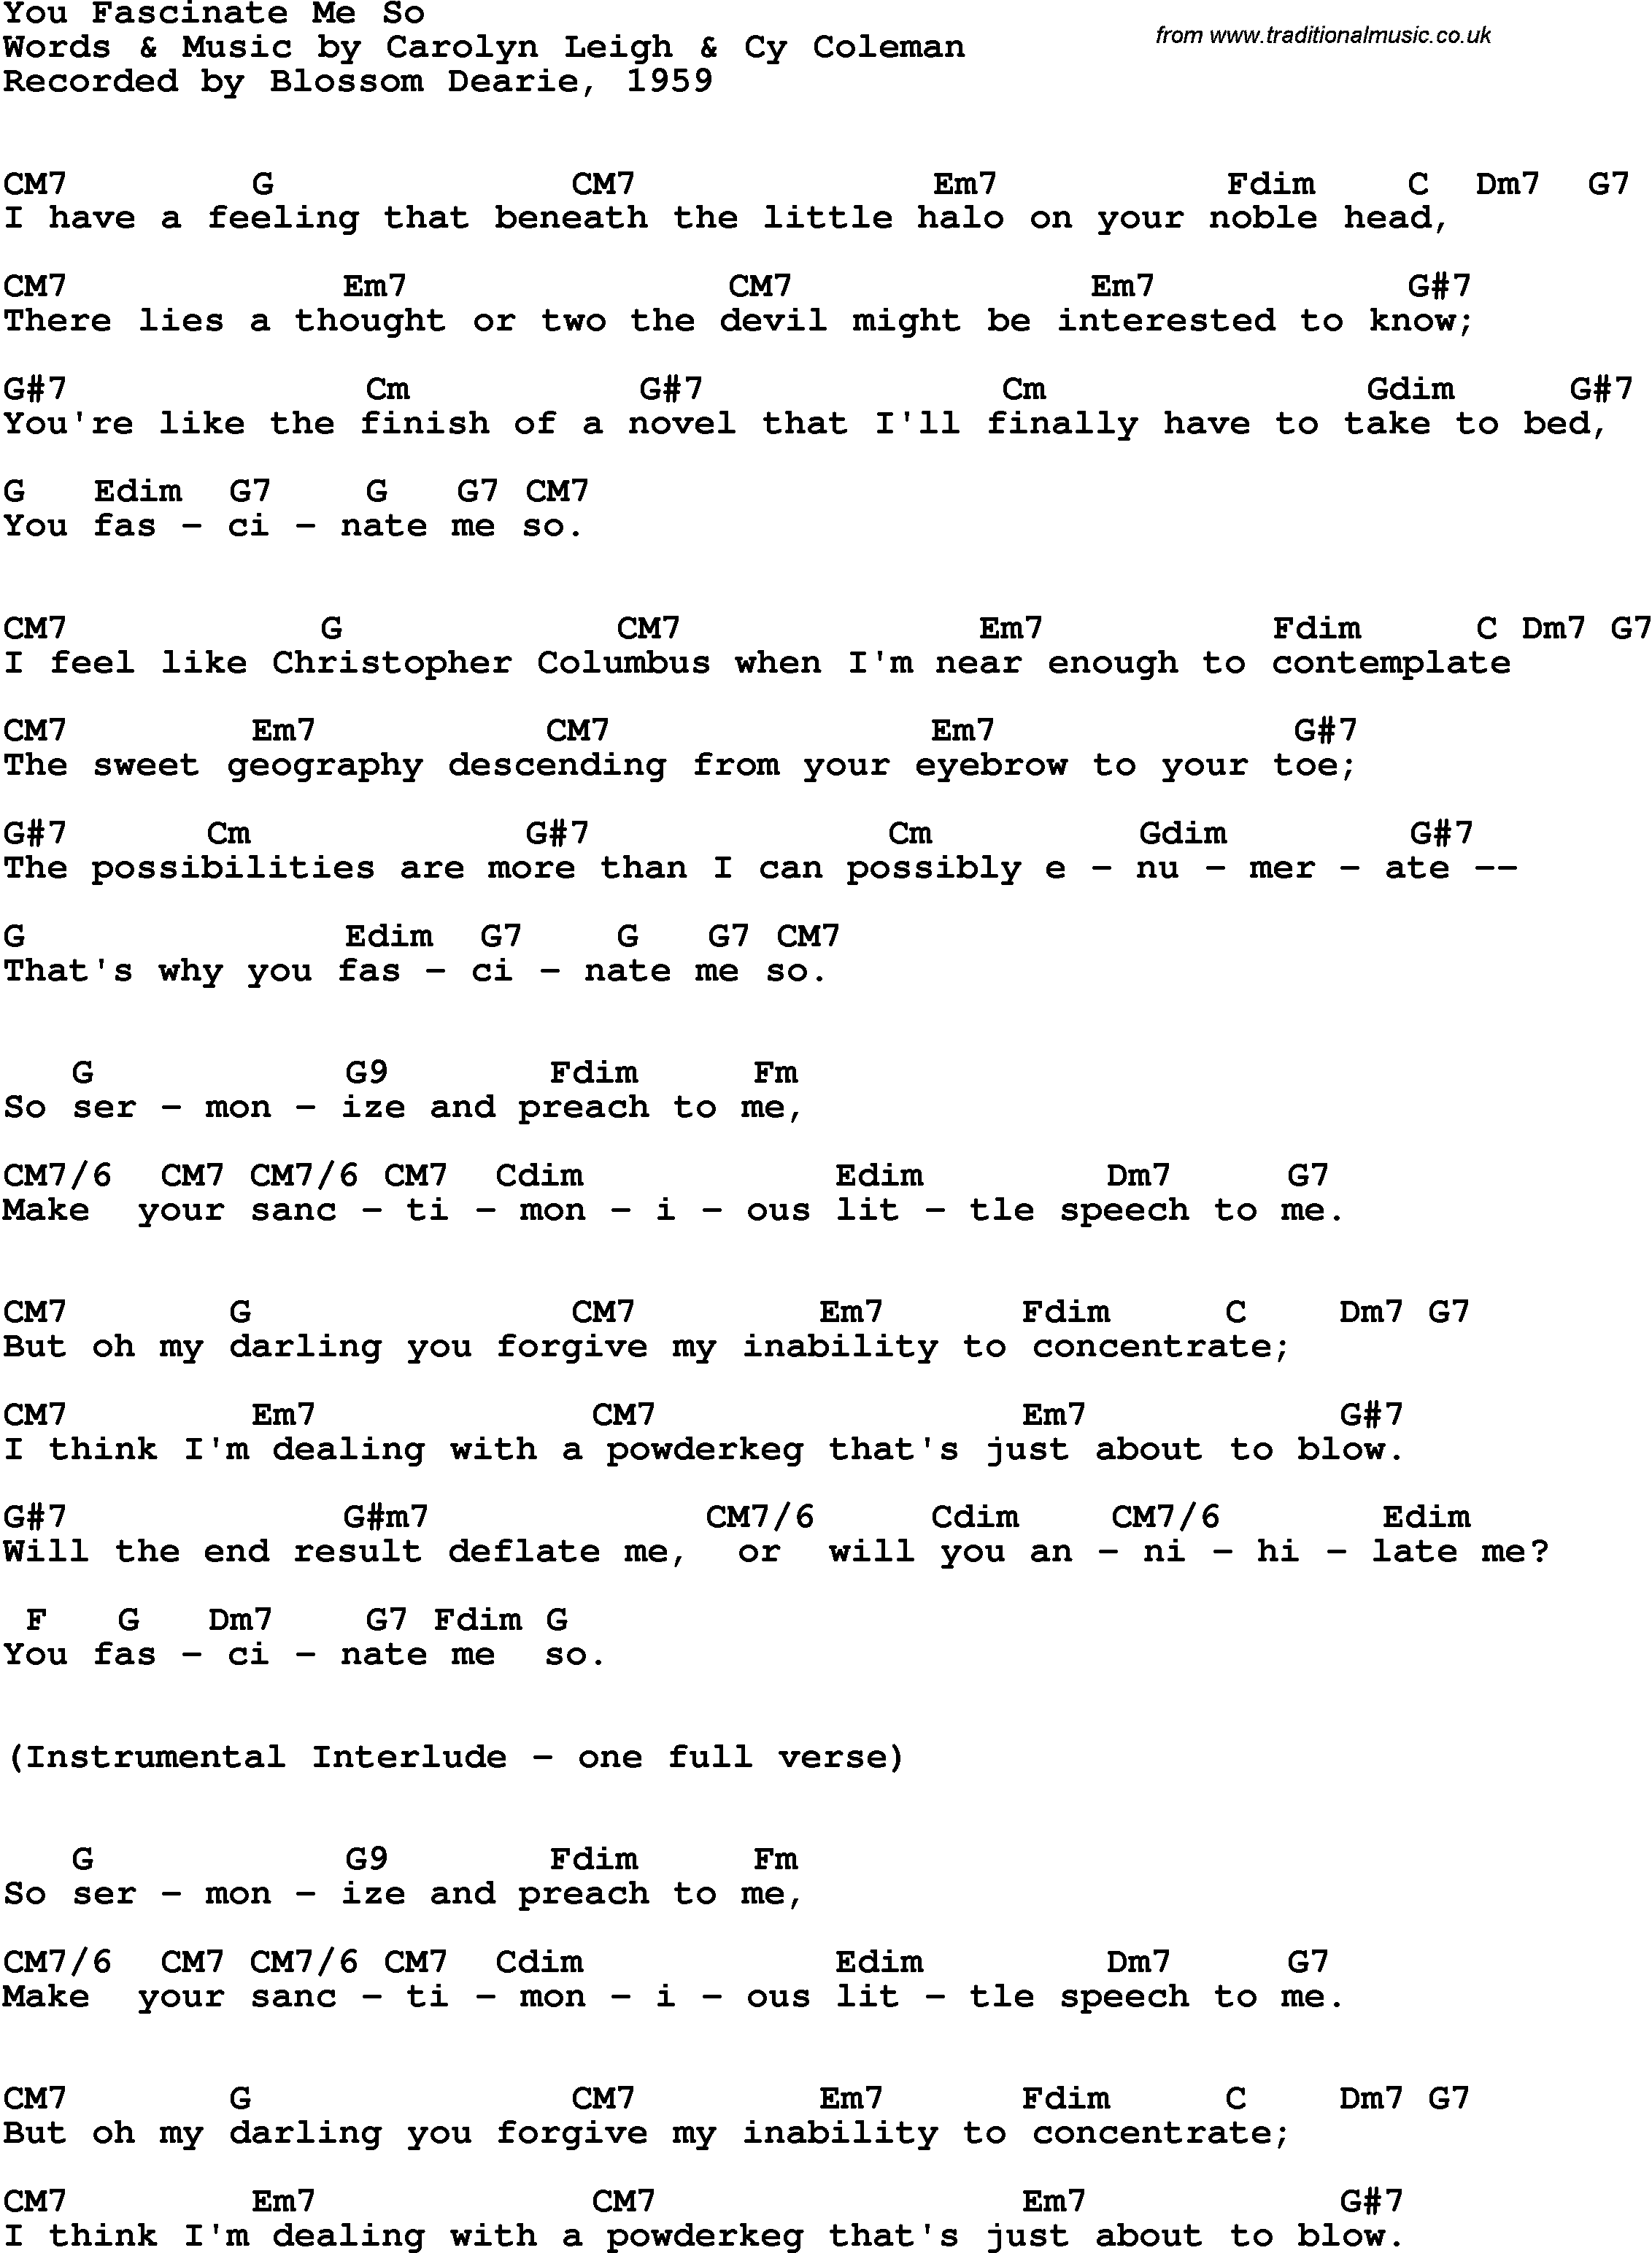 Song Lyrics With Guitar Chords For You Fascinate Me So Blossom